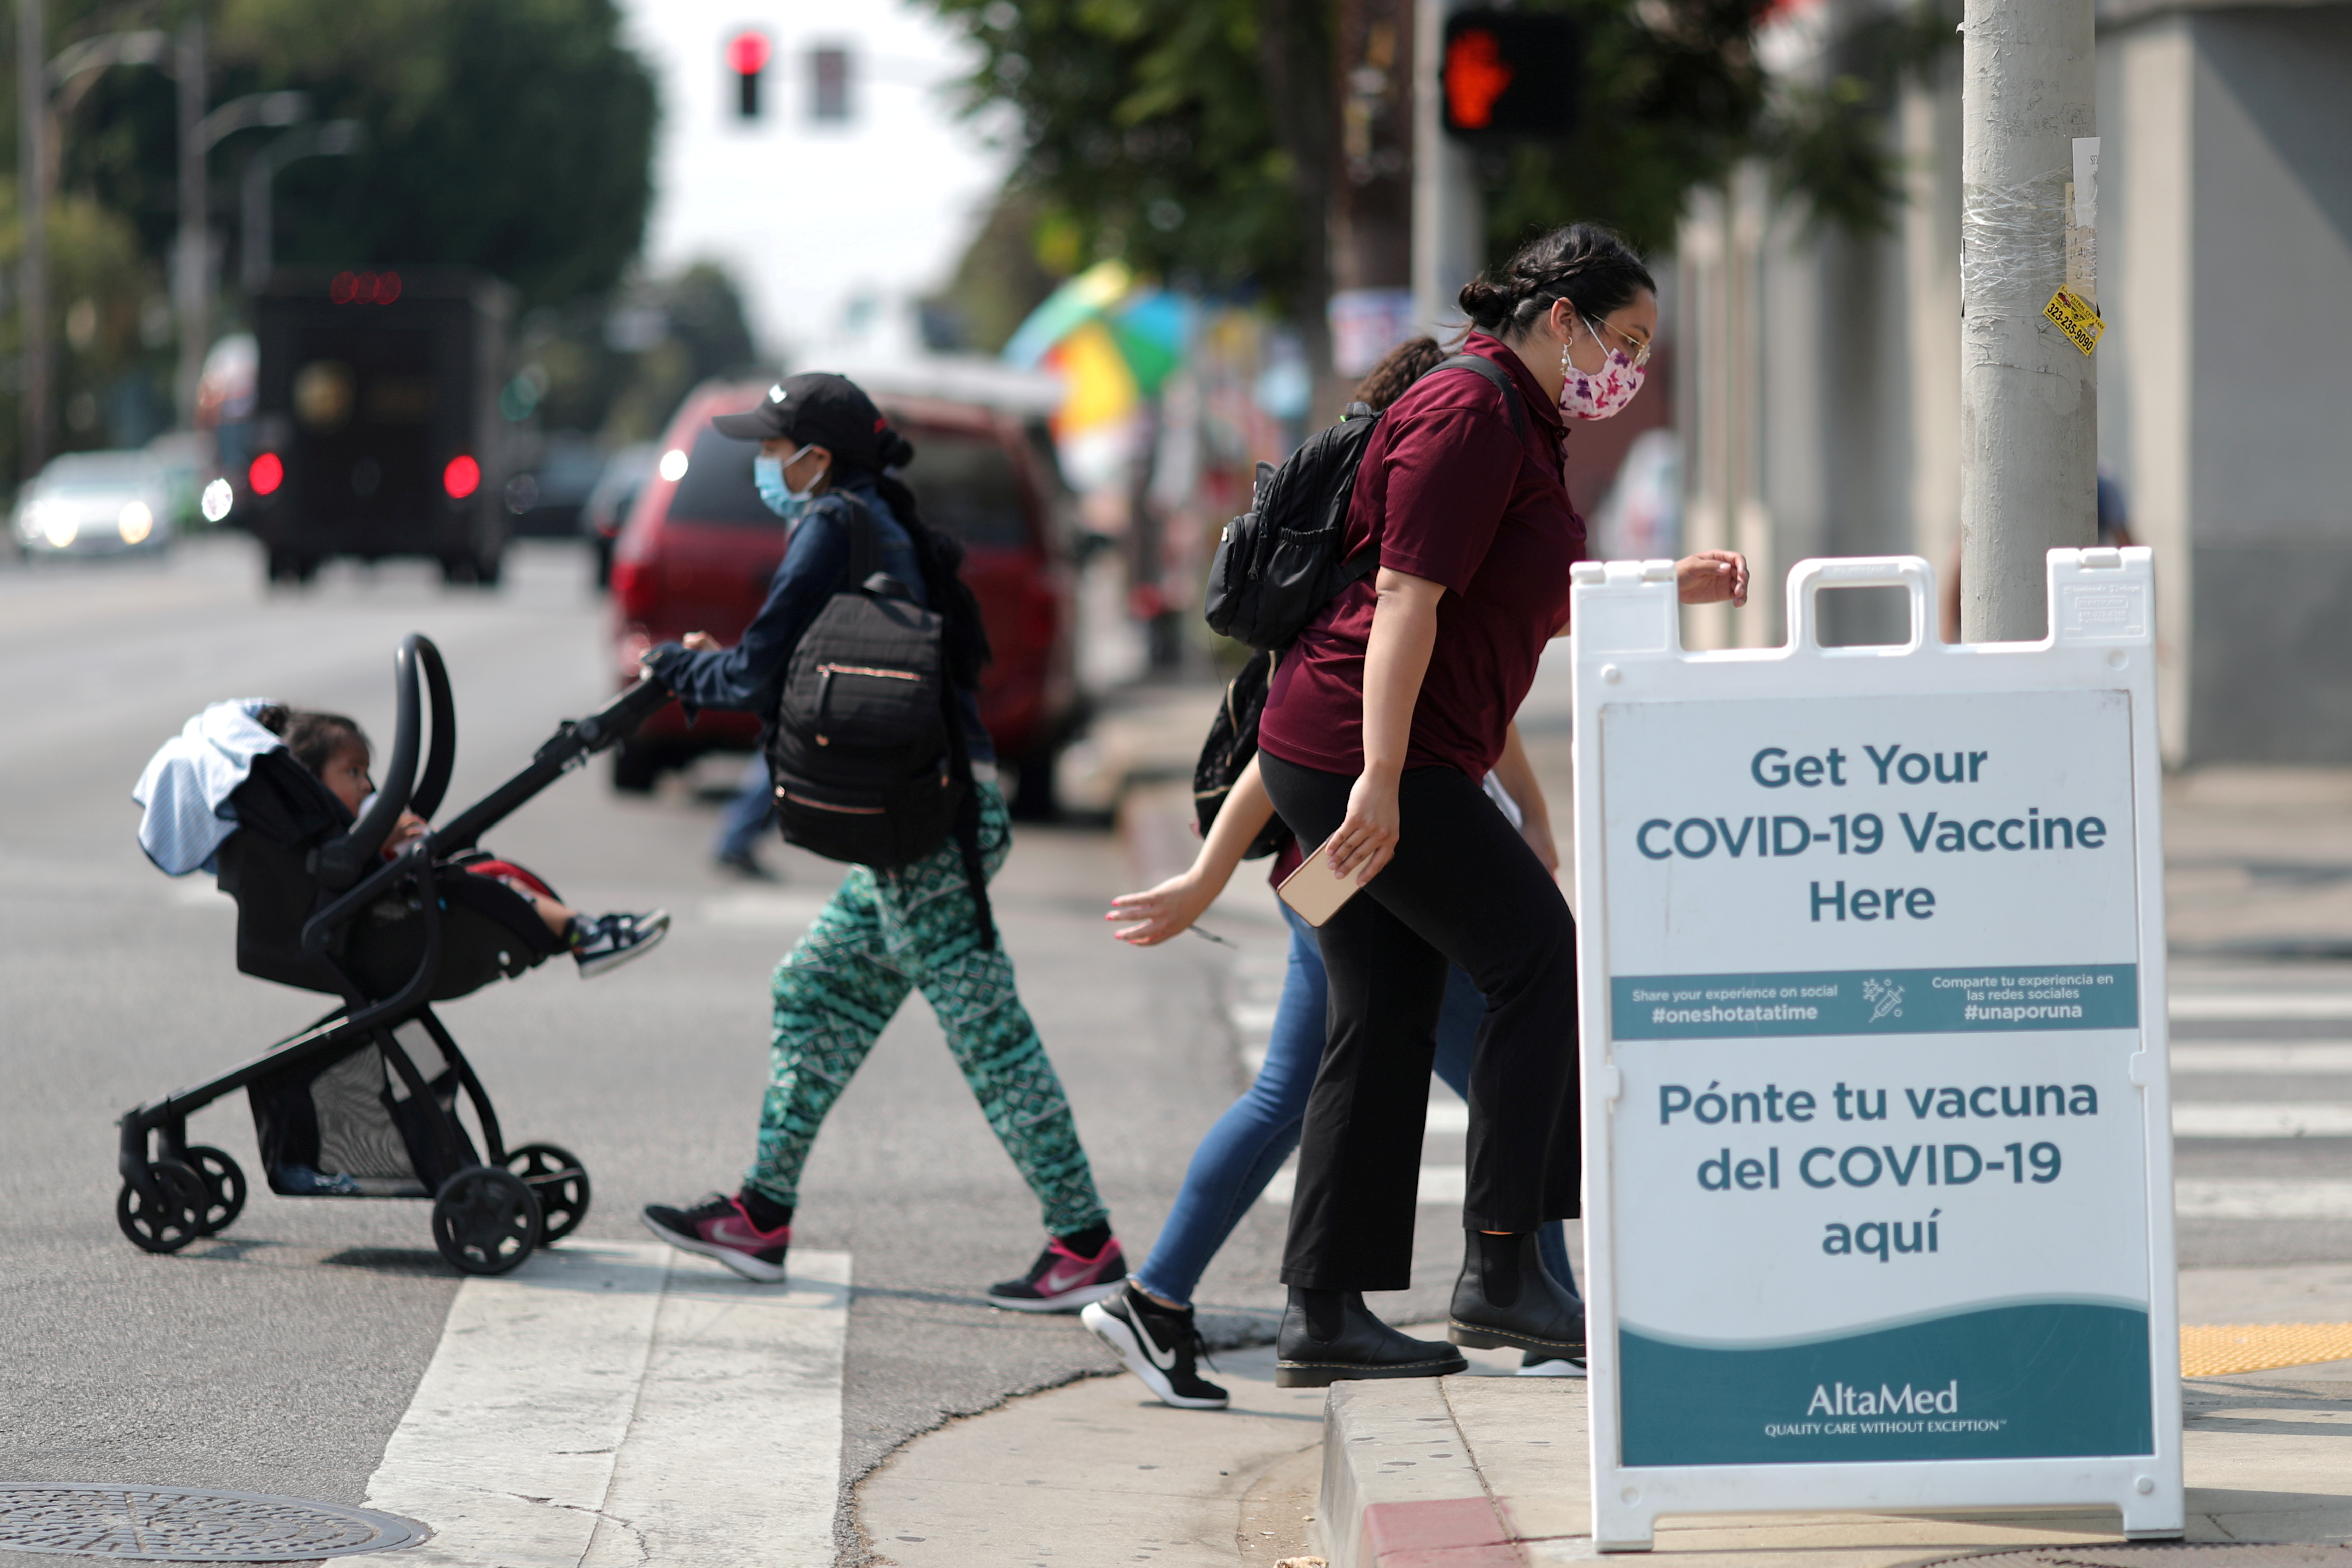 People walk past a sign for a coronavirus disease (COVID-19) vaccination clinic in Los Angeles, California, U.S., August 17, 2021. REUTERS/Lucy Nicholson/File Photo